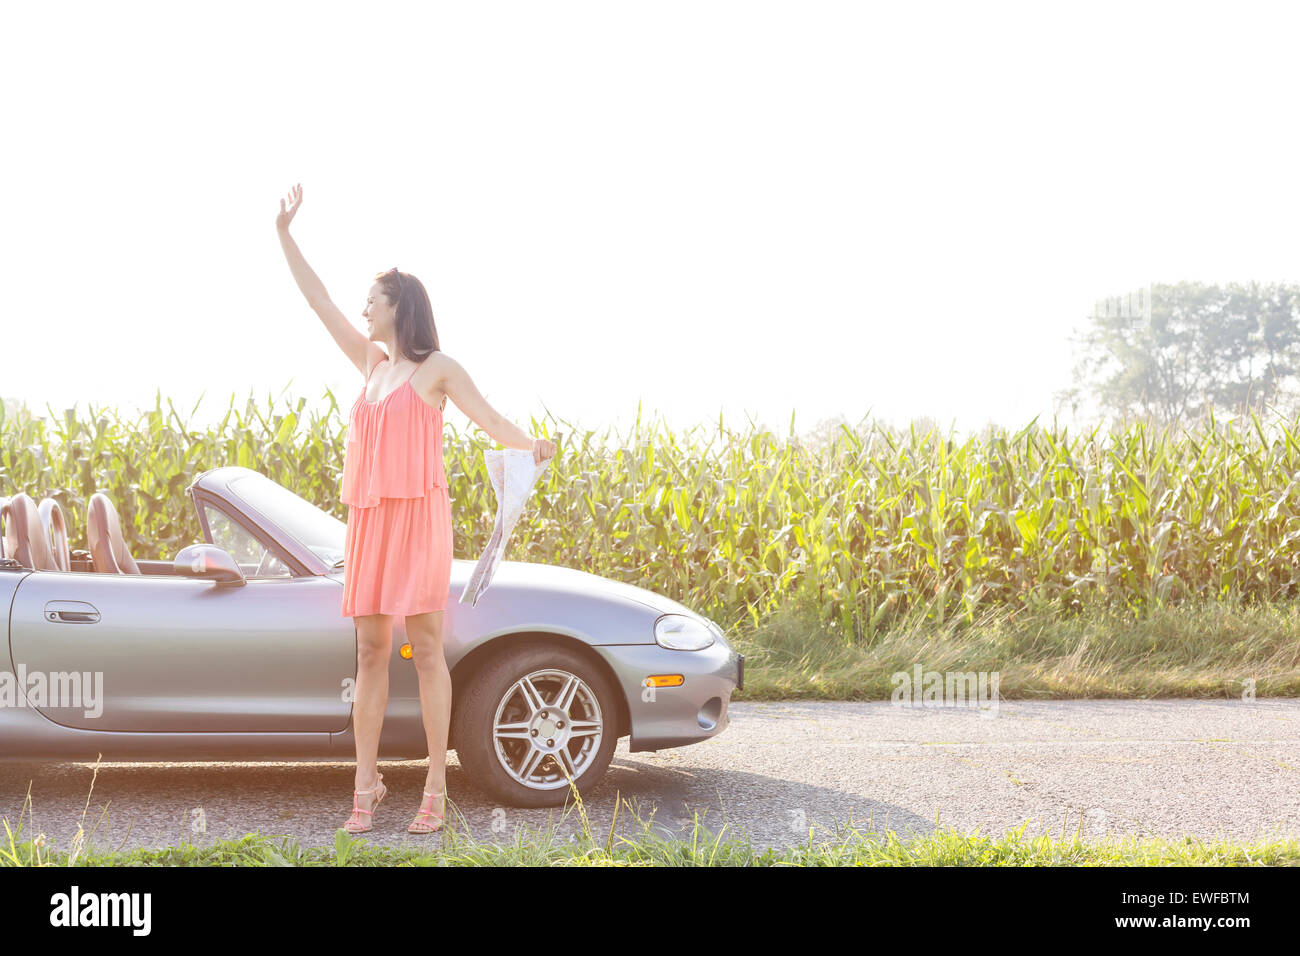 Full length of woman gesturing while holding map by convertible against clear sky - Stock Image